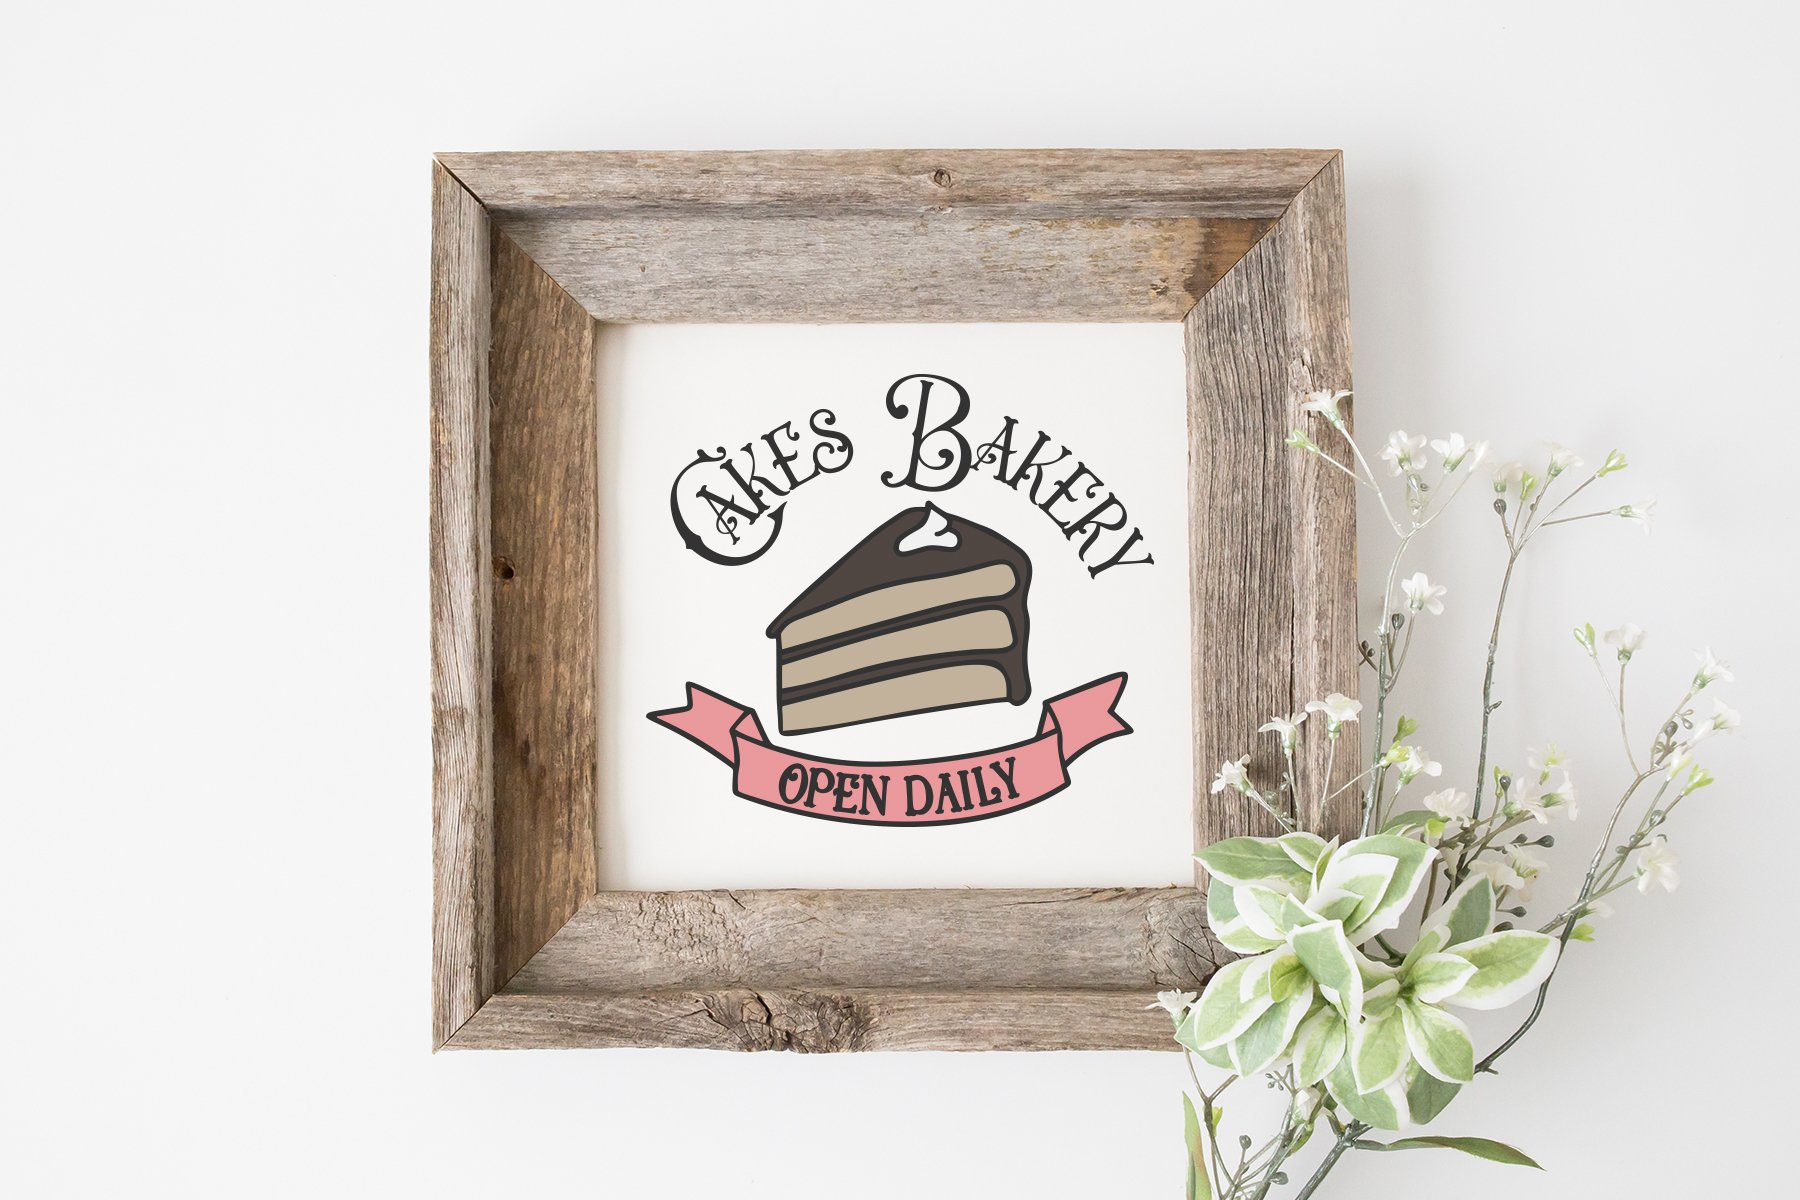 Cakes Bakery SVG | Kitchen Sign SVG example image 2